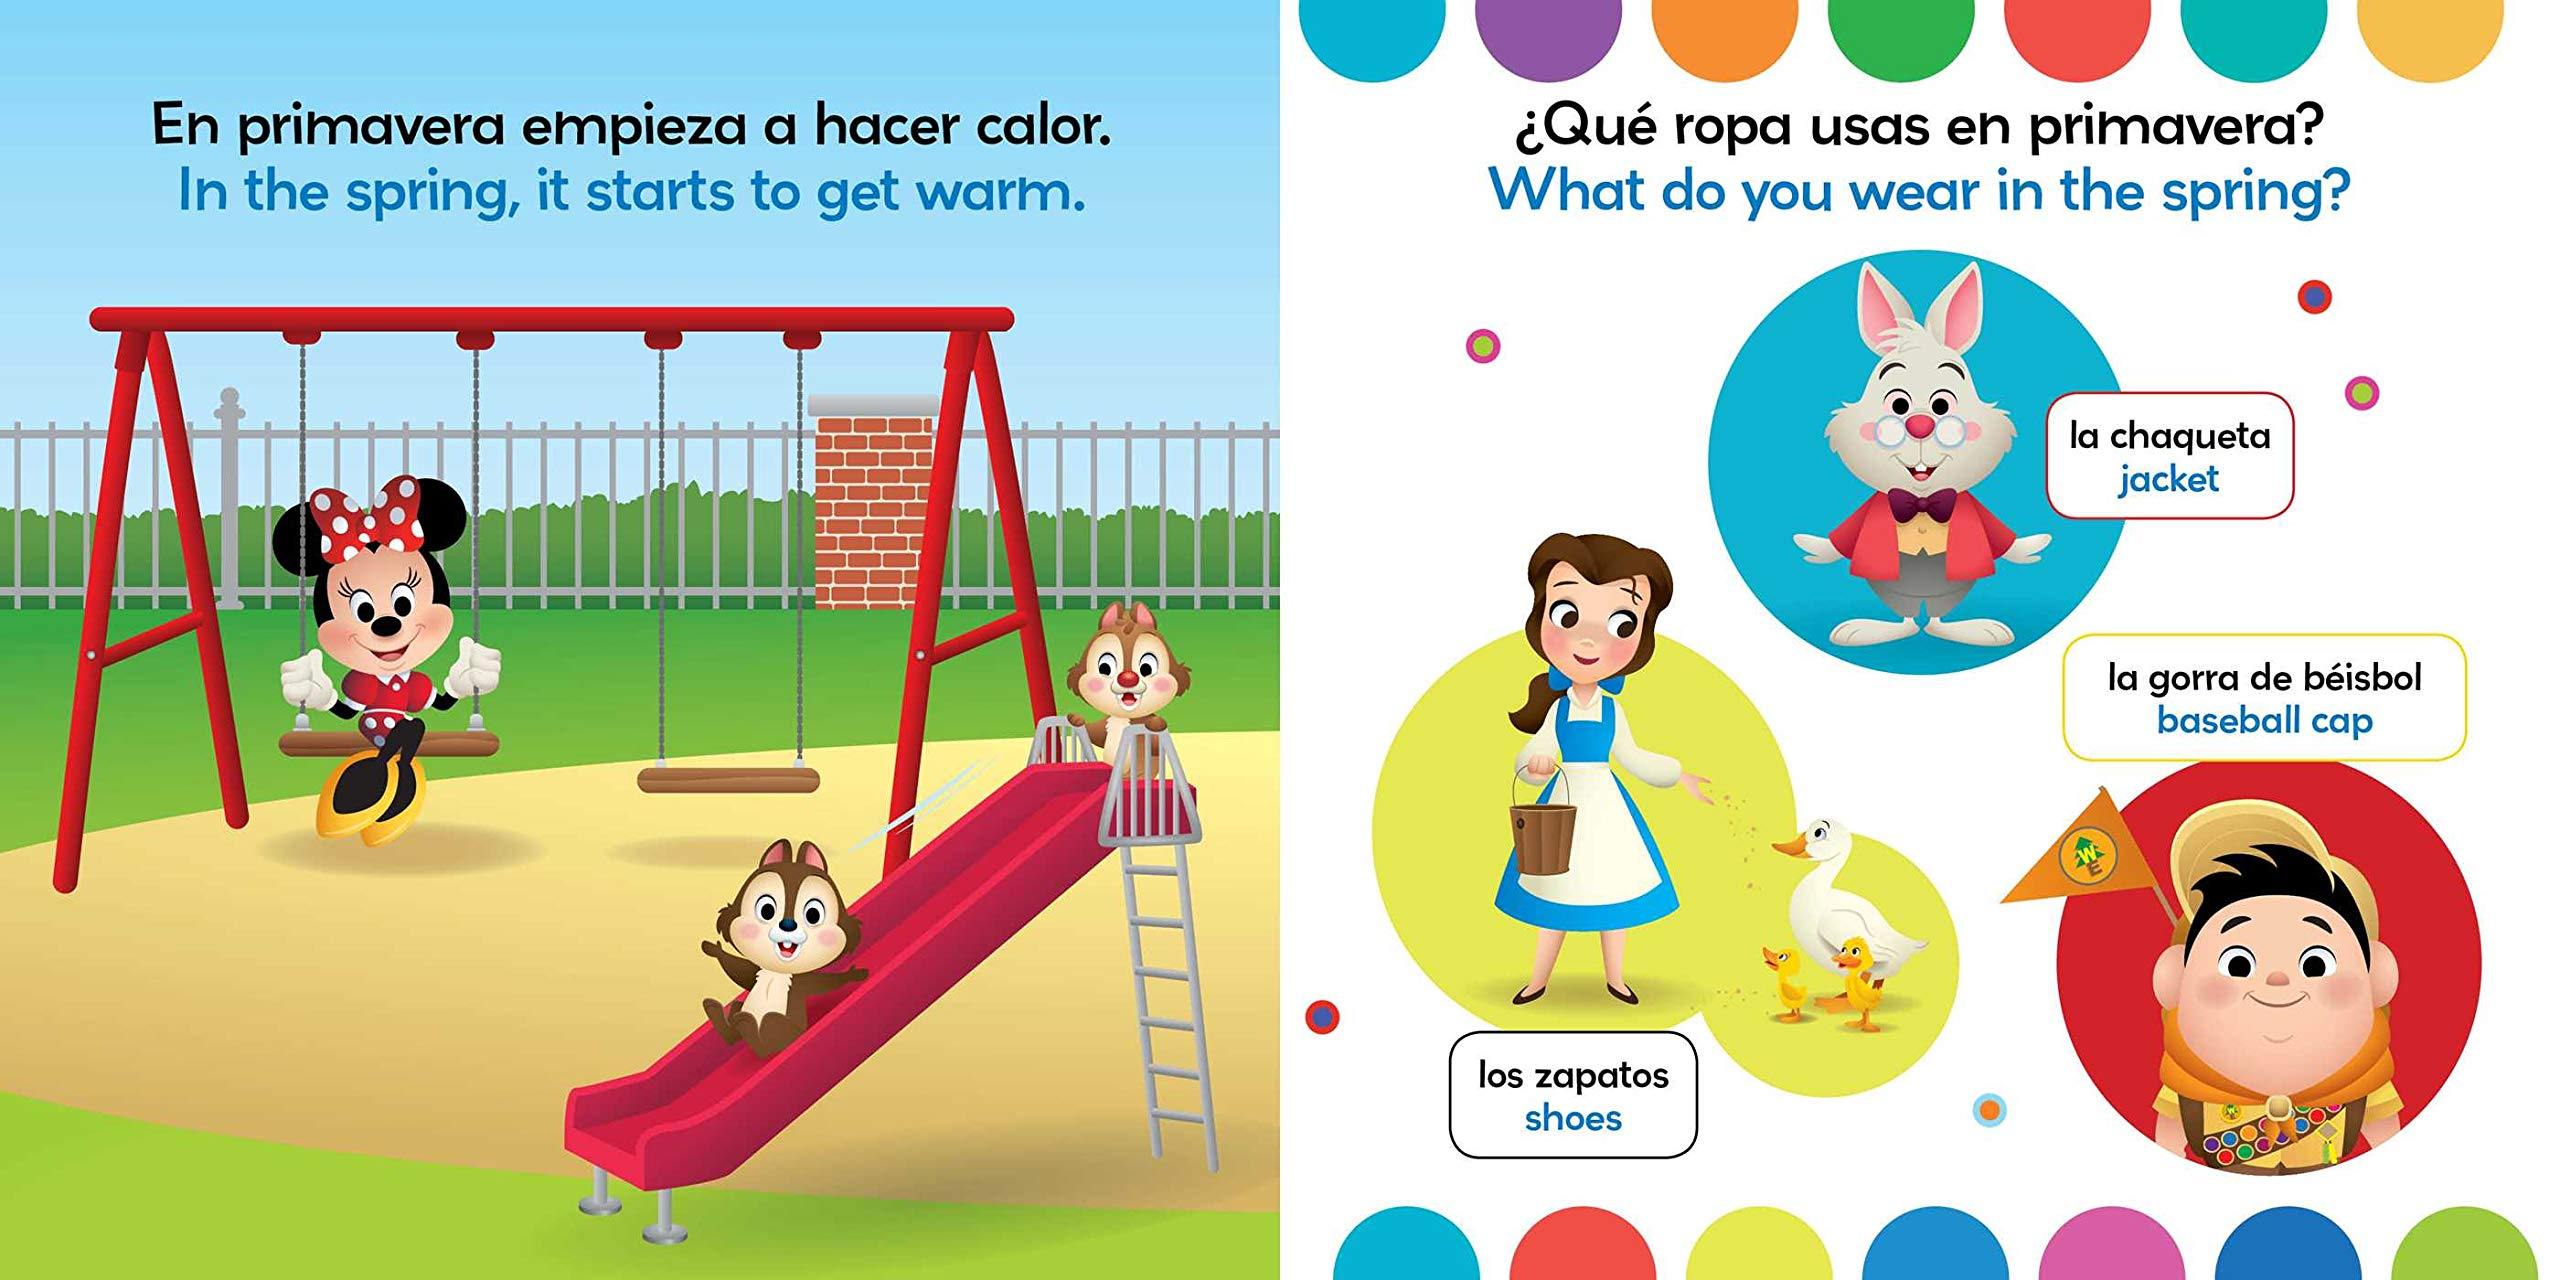 Amazon.com: Rain or Shine / Lluvia o sol (English-Spanish) (Disney Baby) (Disney Bilingual) (9781499807936): Stevie Stack, Laura Collado Piriz: Books